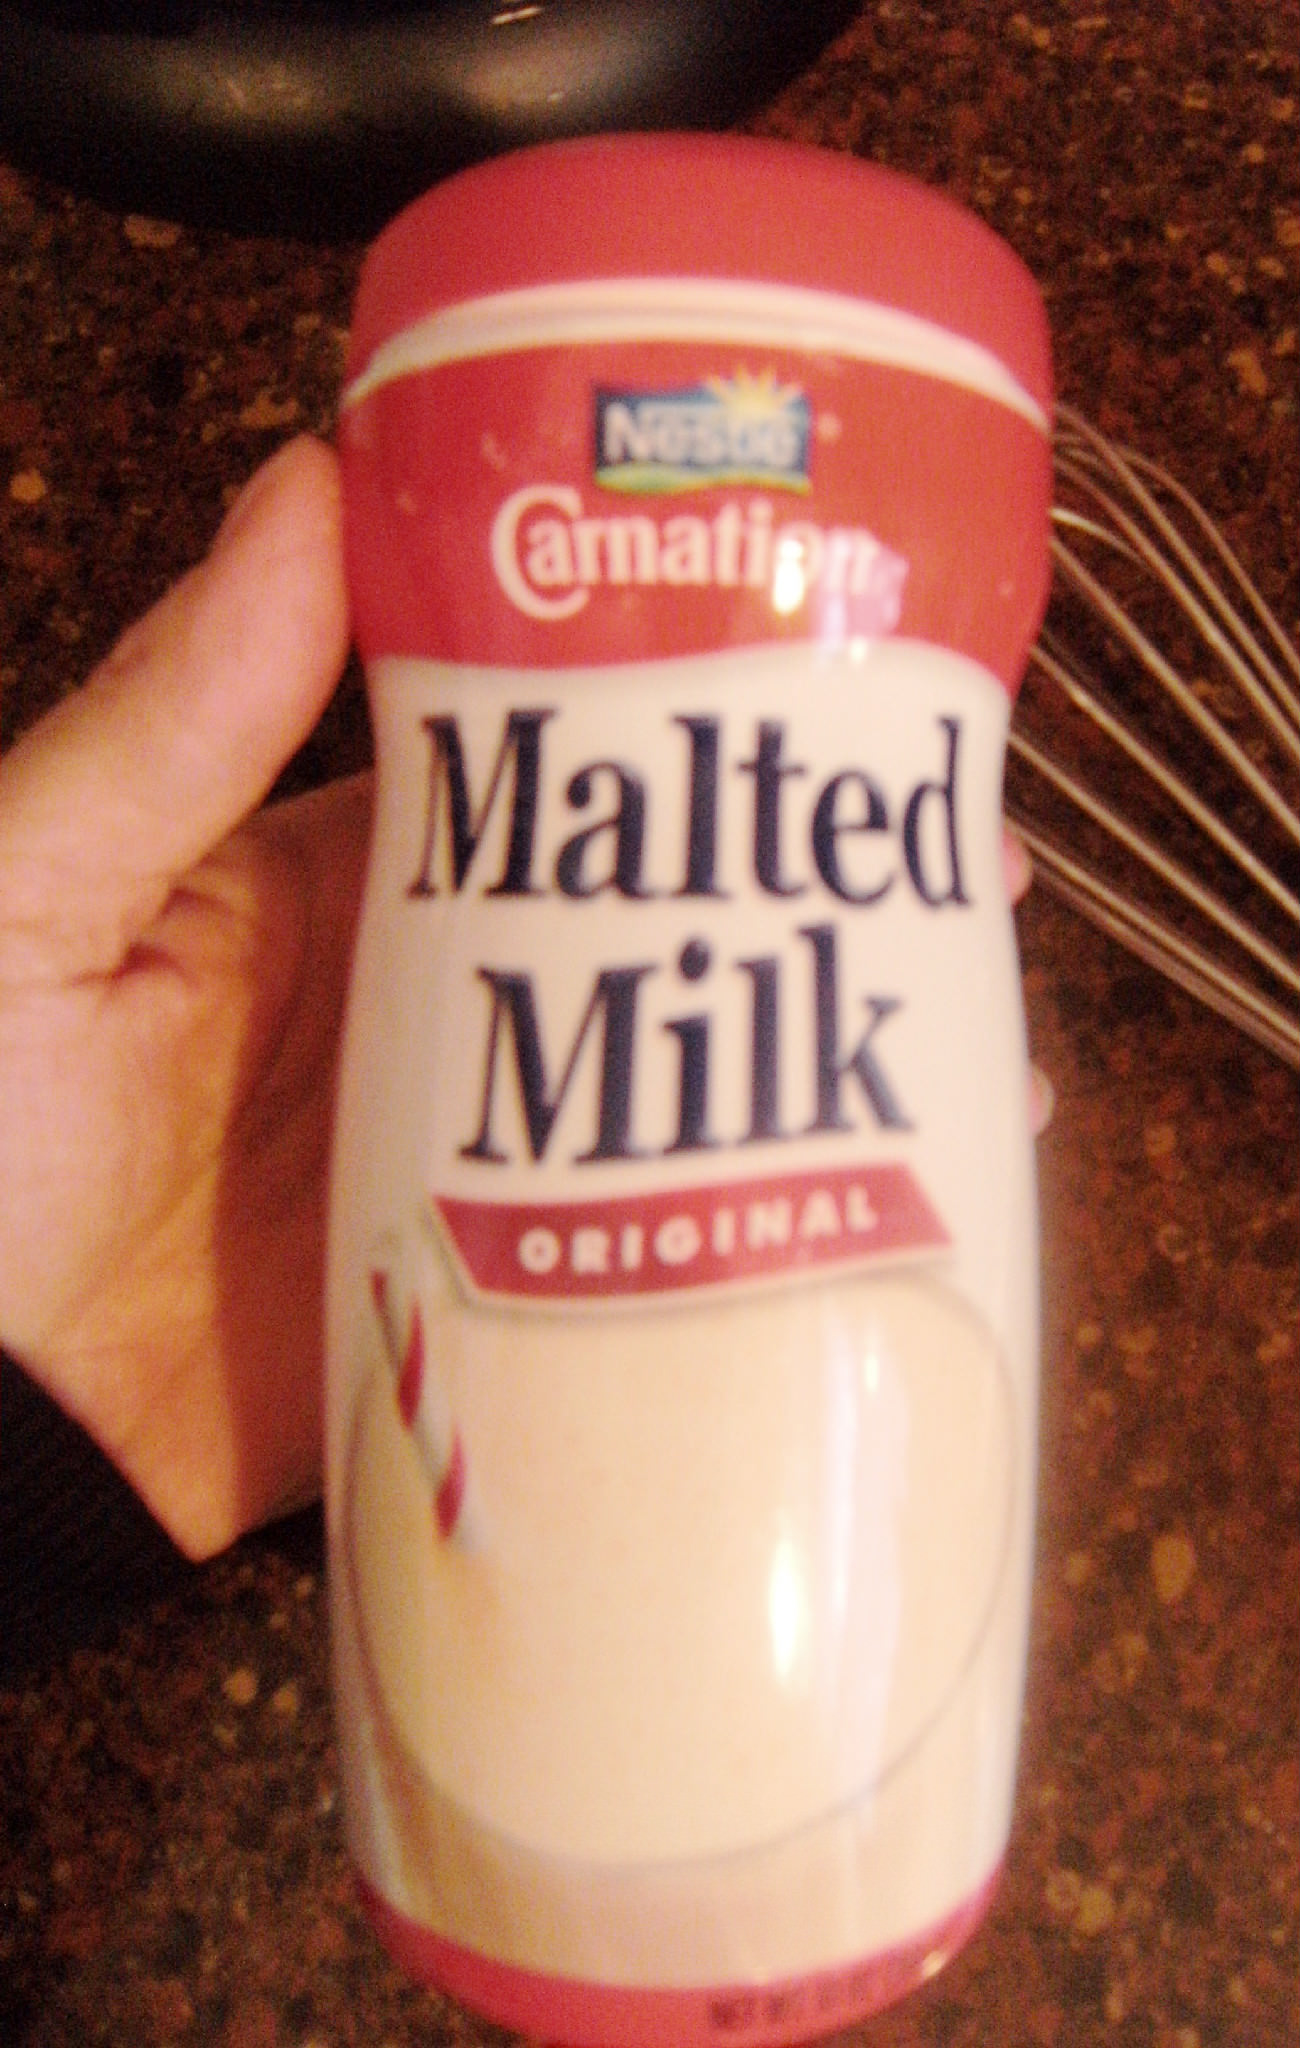 Carnation Malted Milk